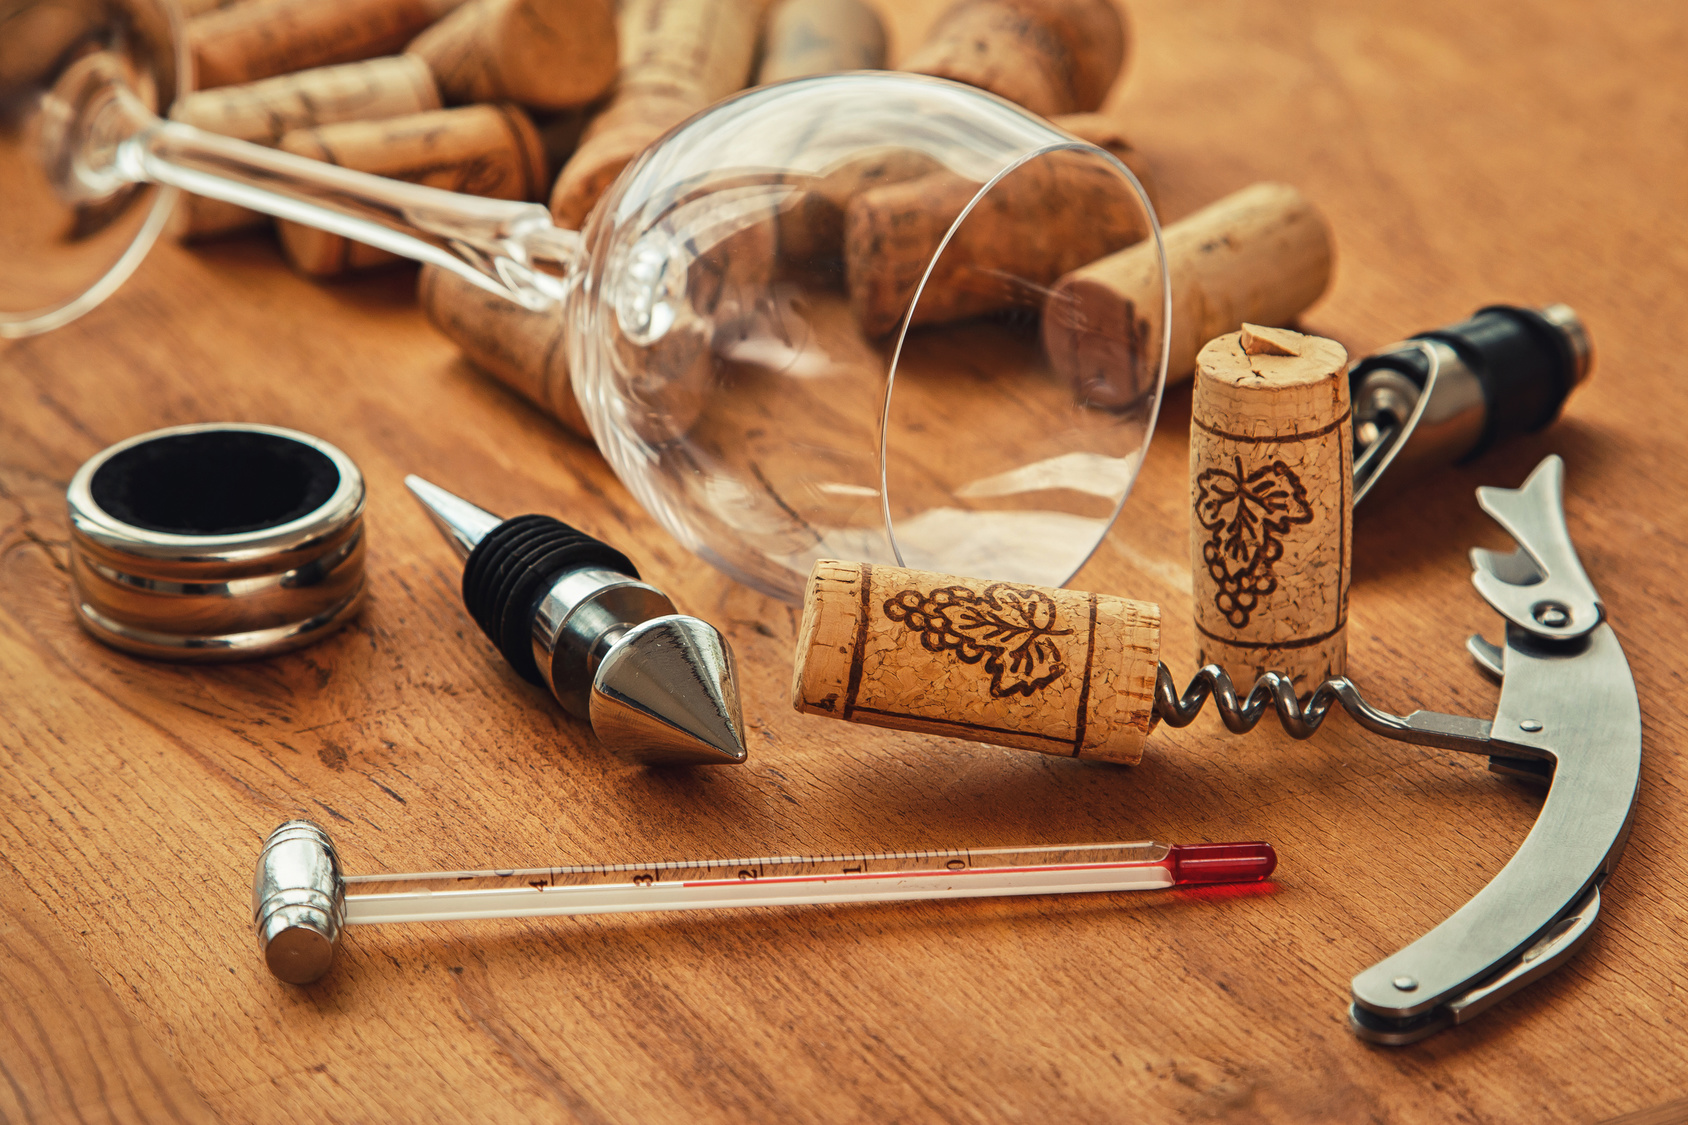 Different wine tools